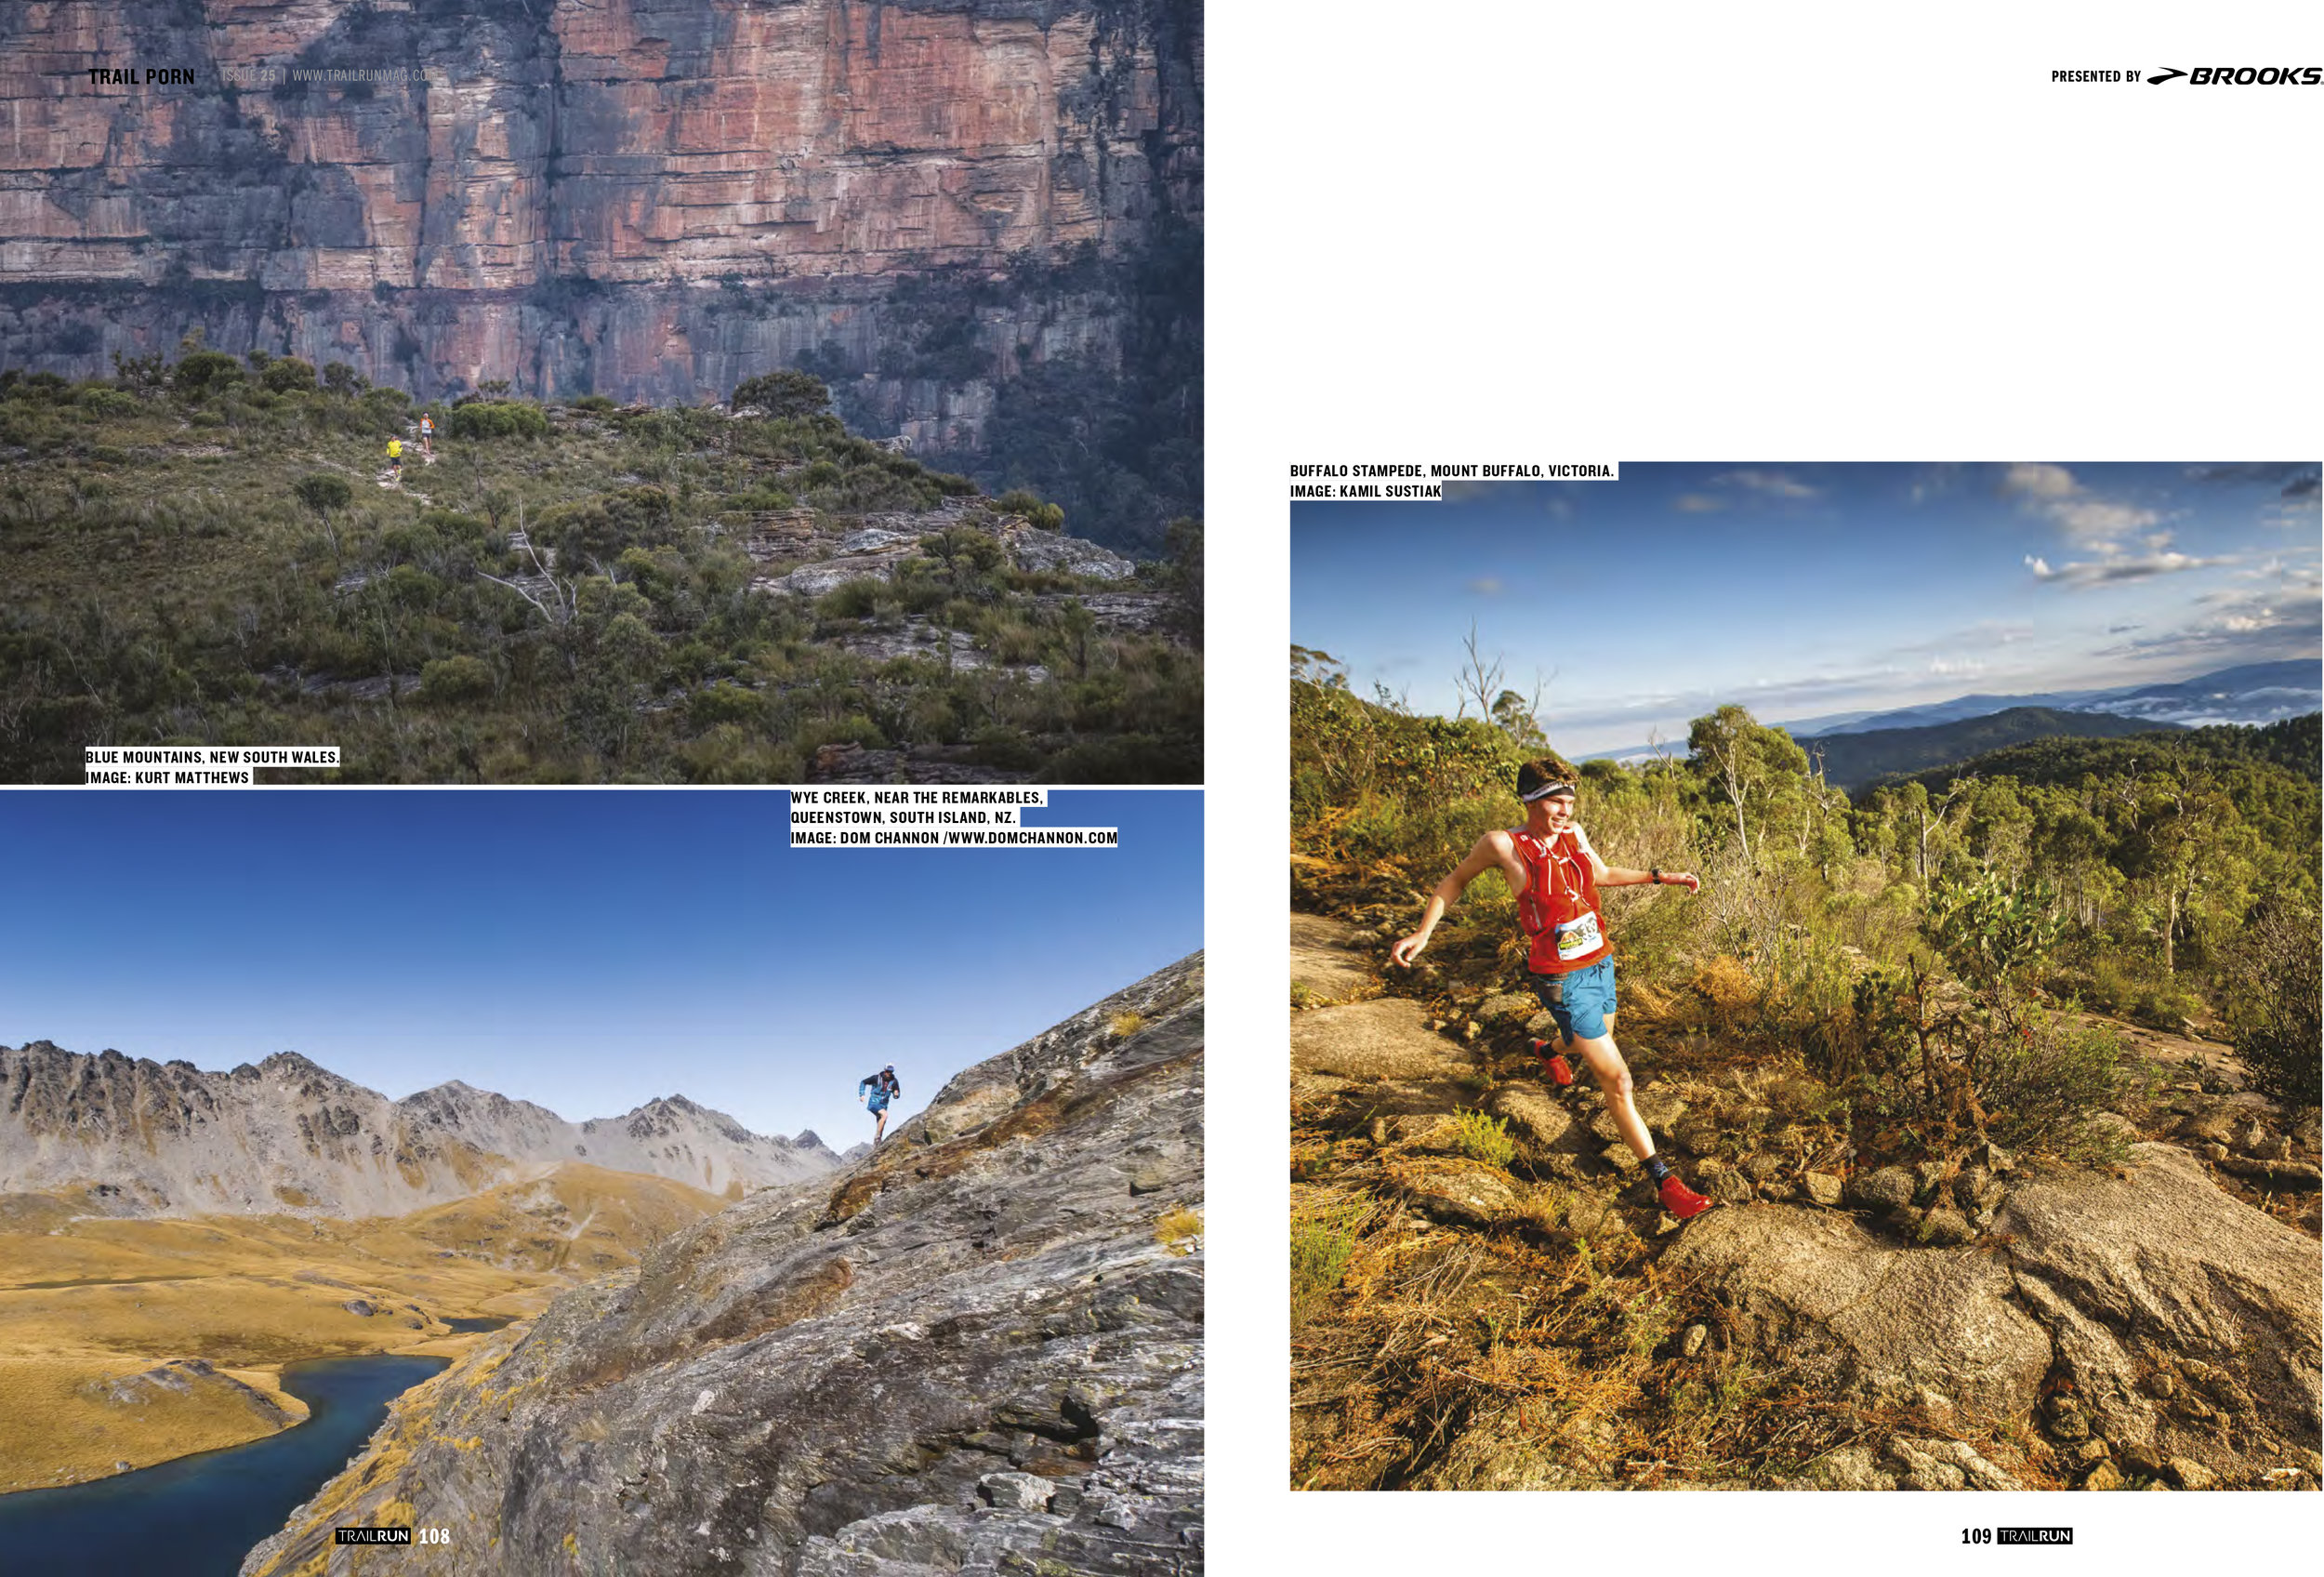 Pages from TRM25-Spring-DIGITAL-SPREADS-6.jpg